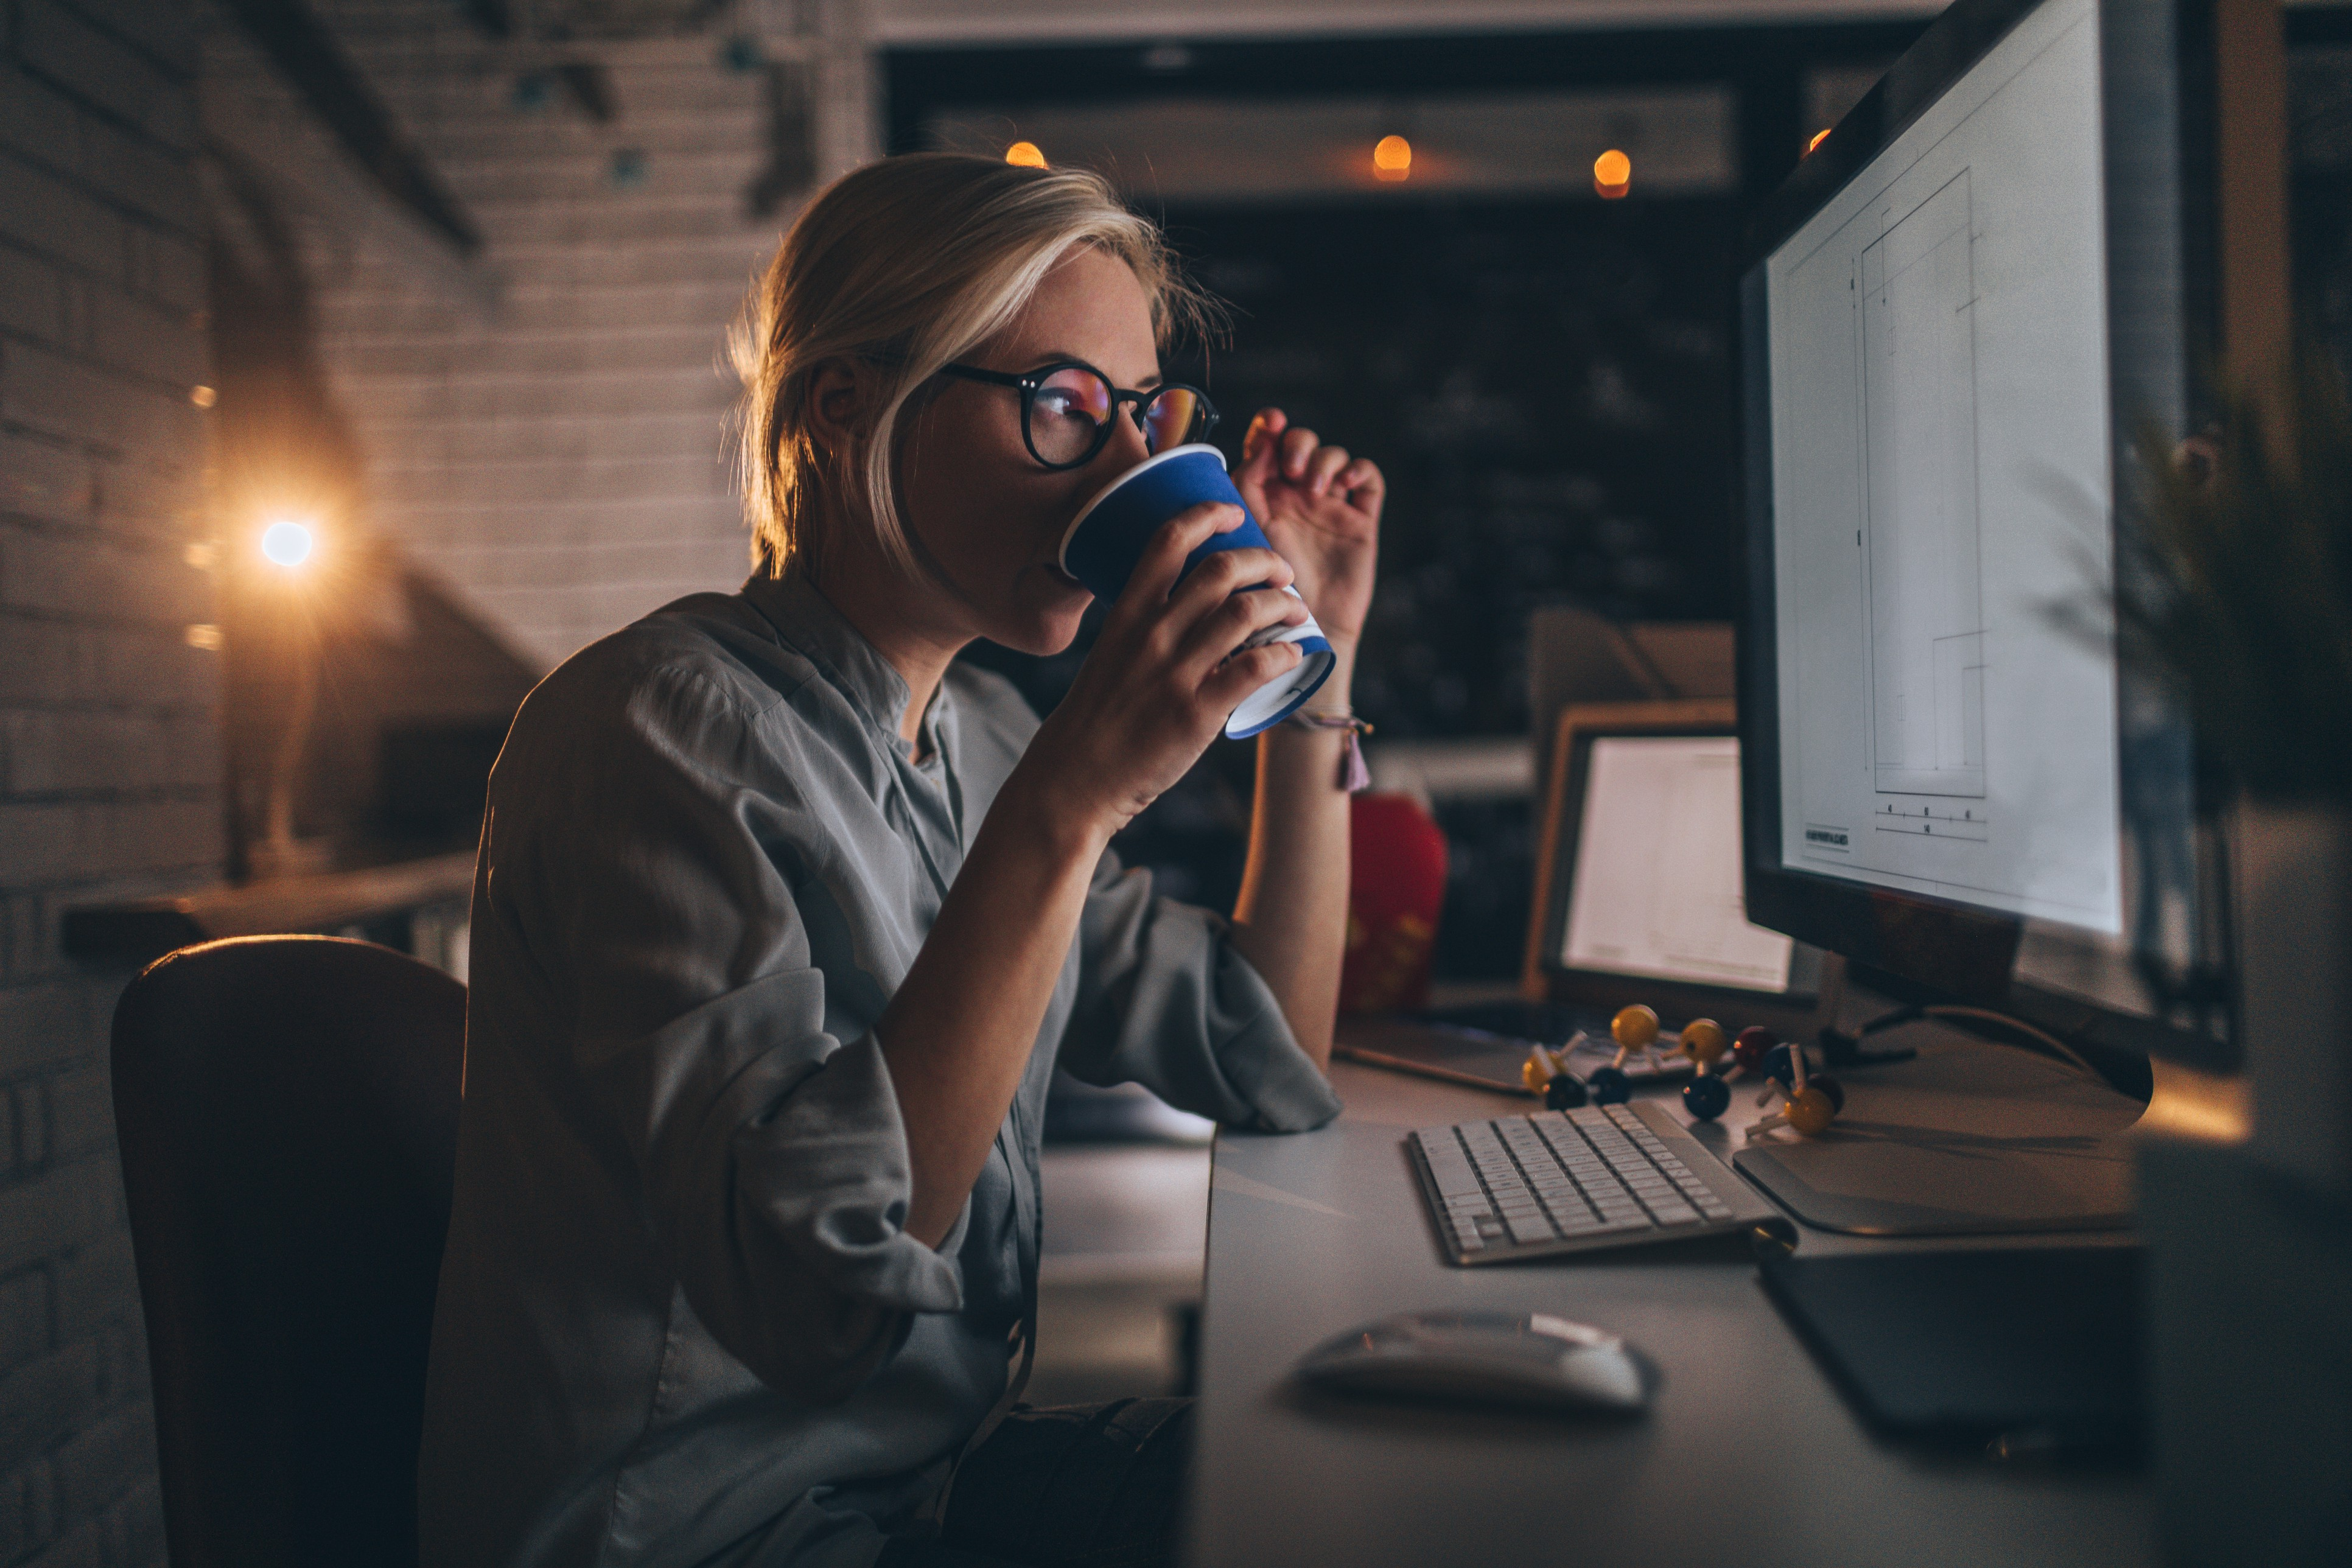 Woman sipping coffee at computer screen.